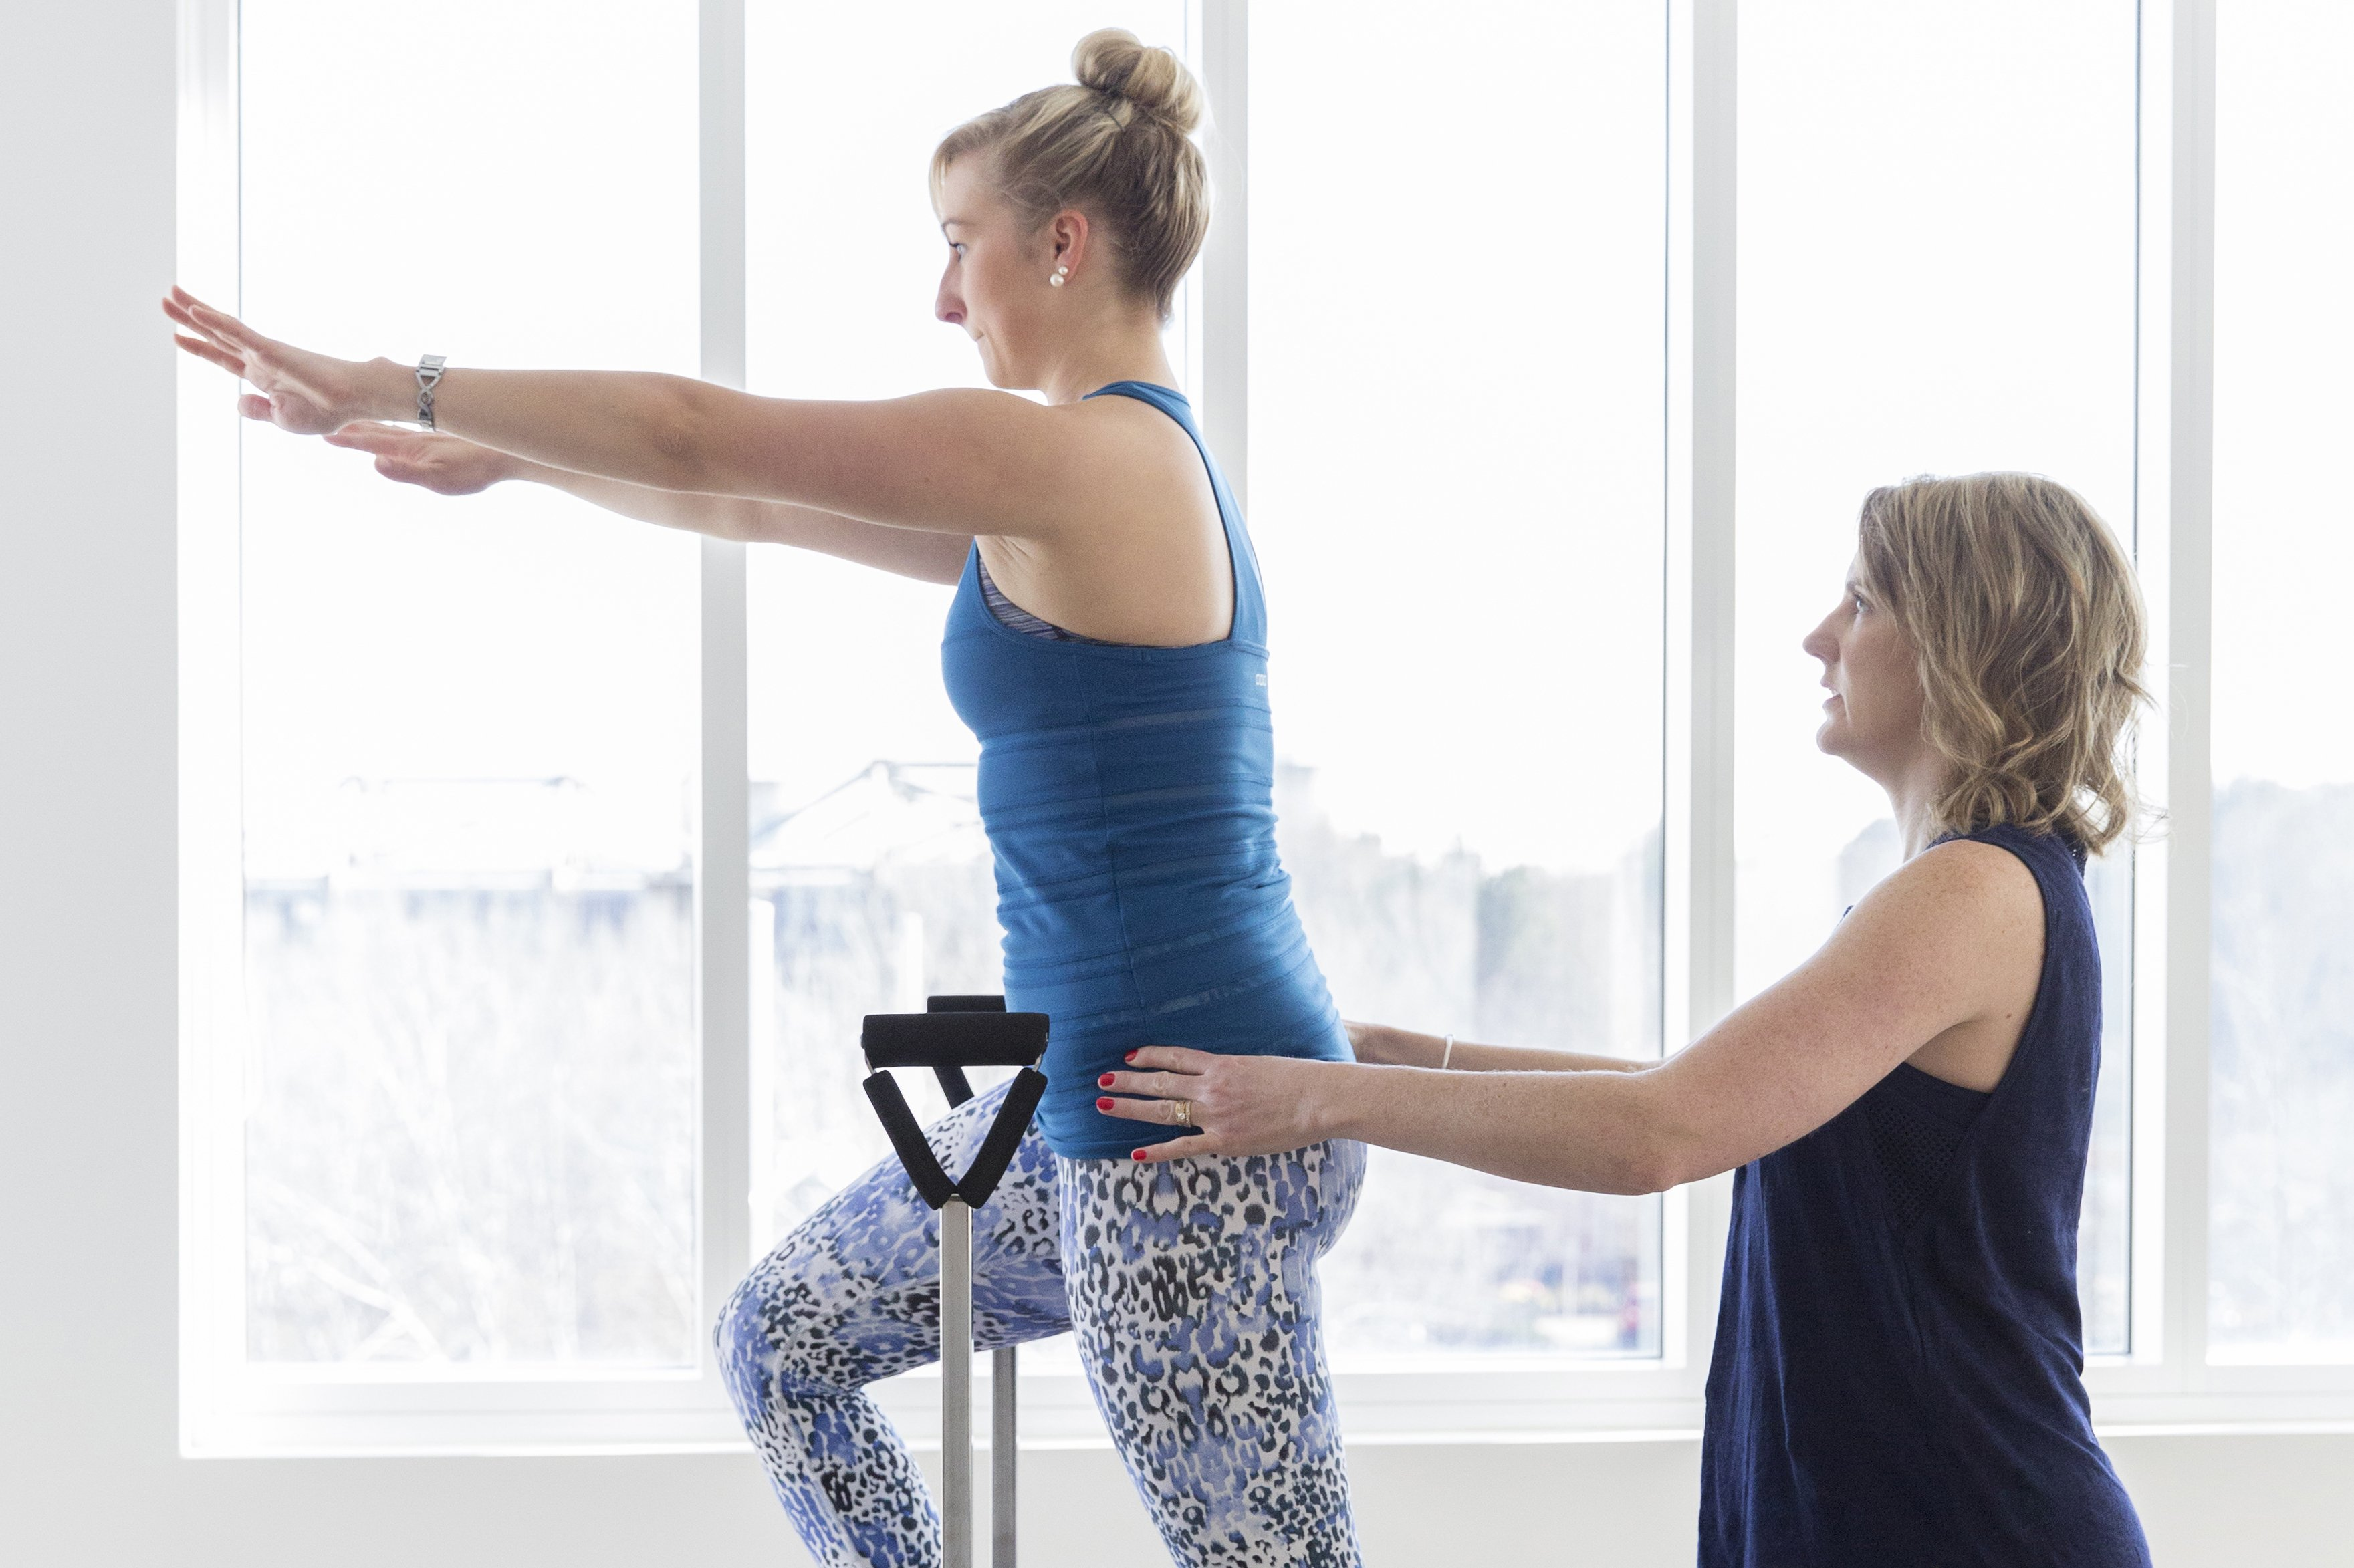 Pilates instructor helping person do Pilates